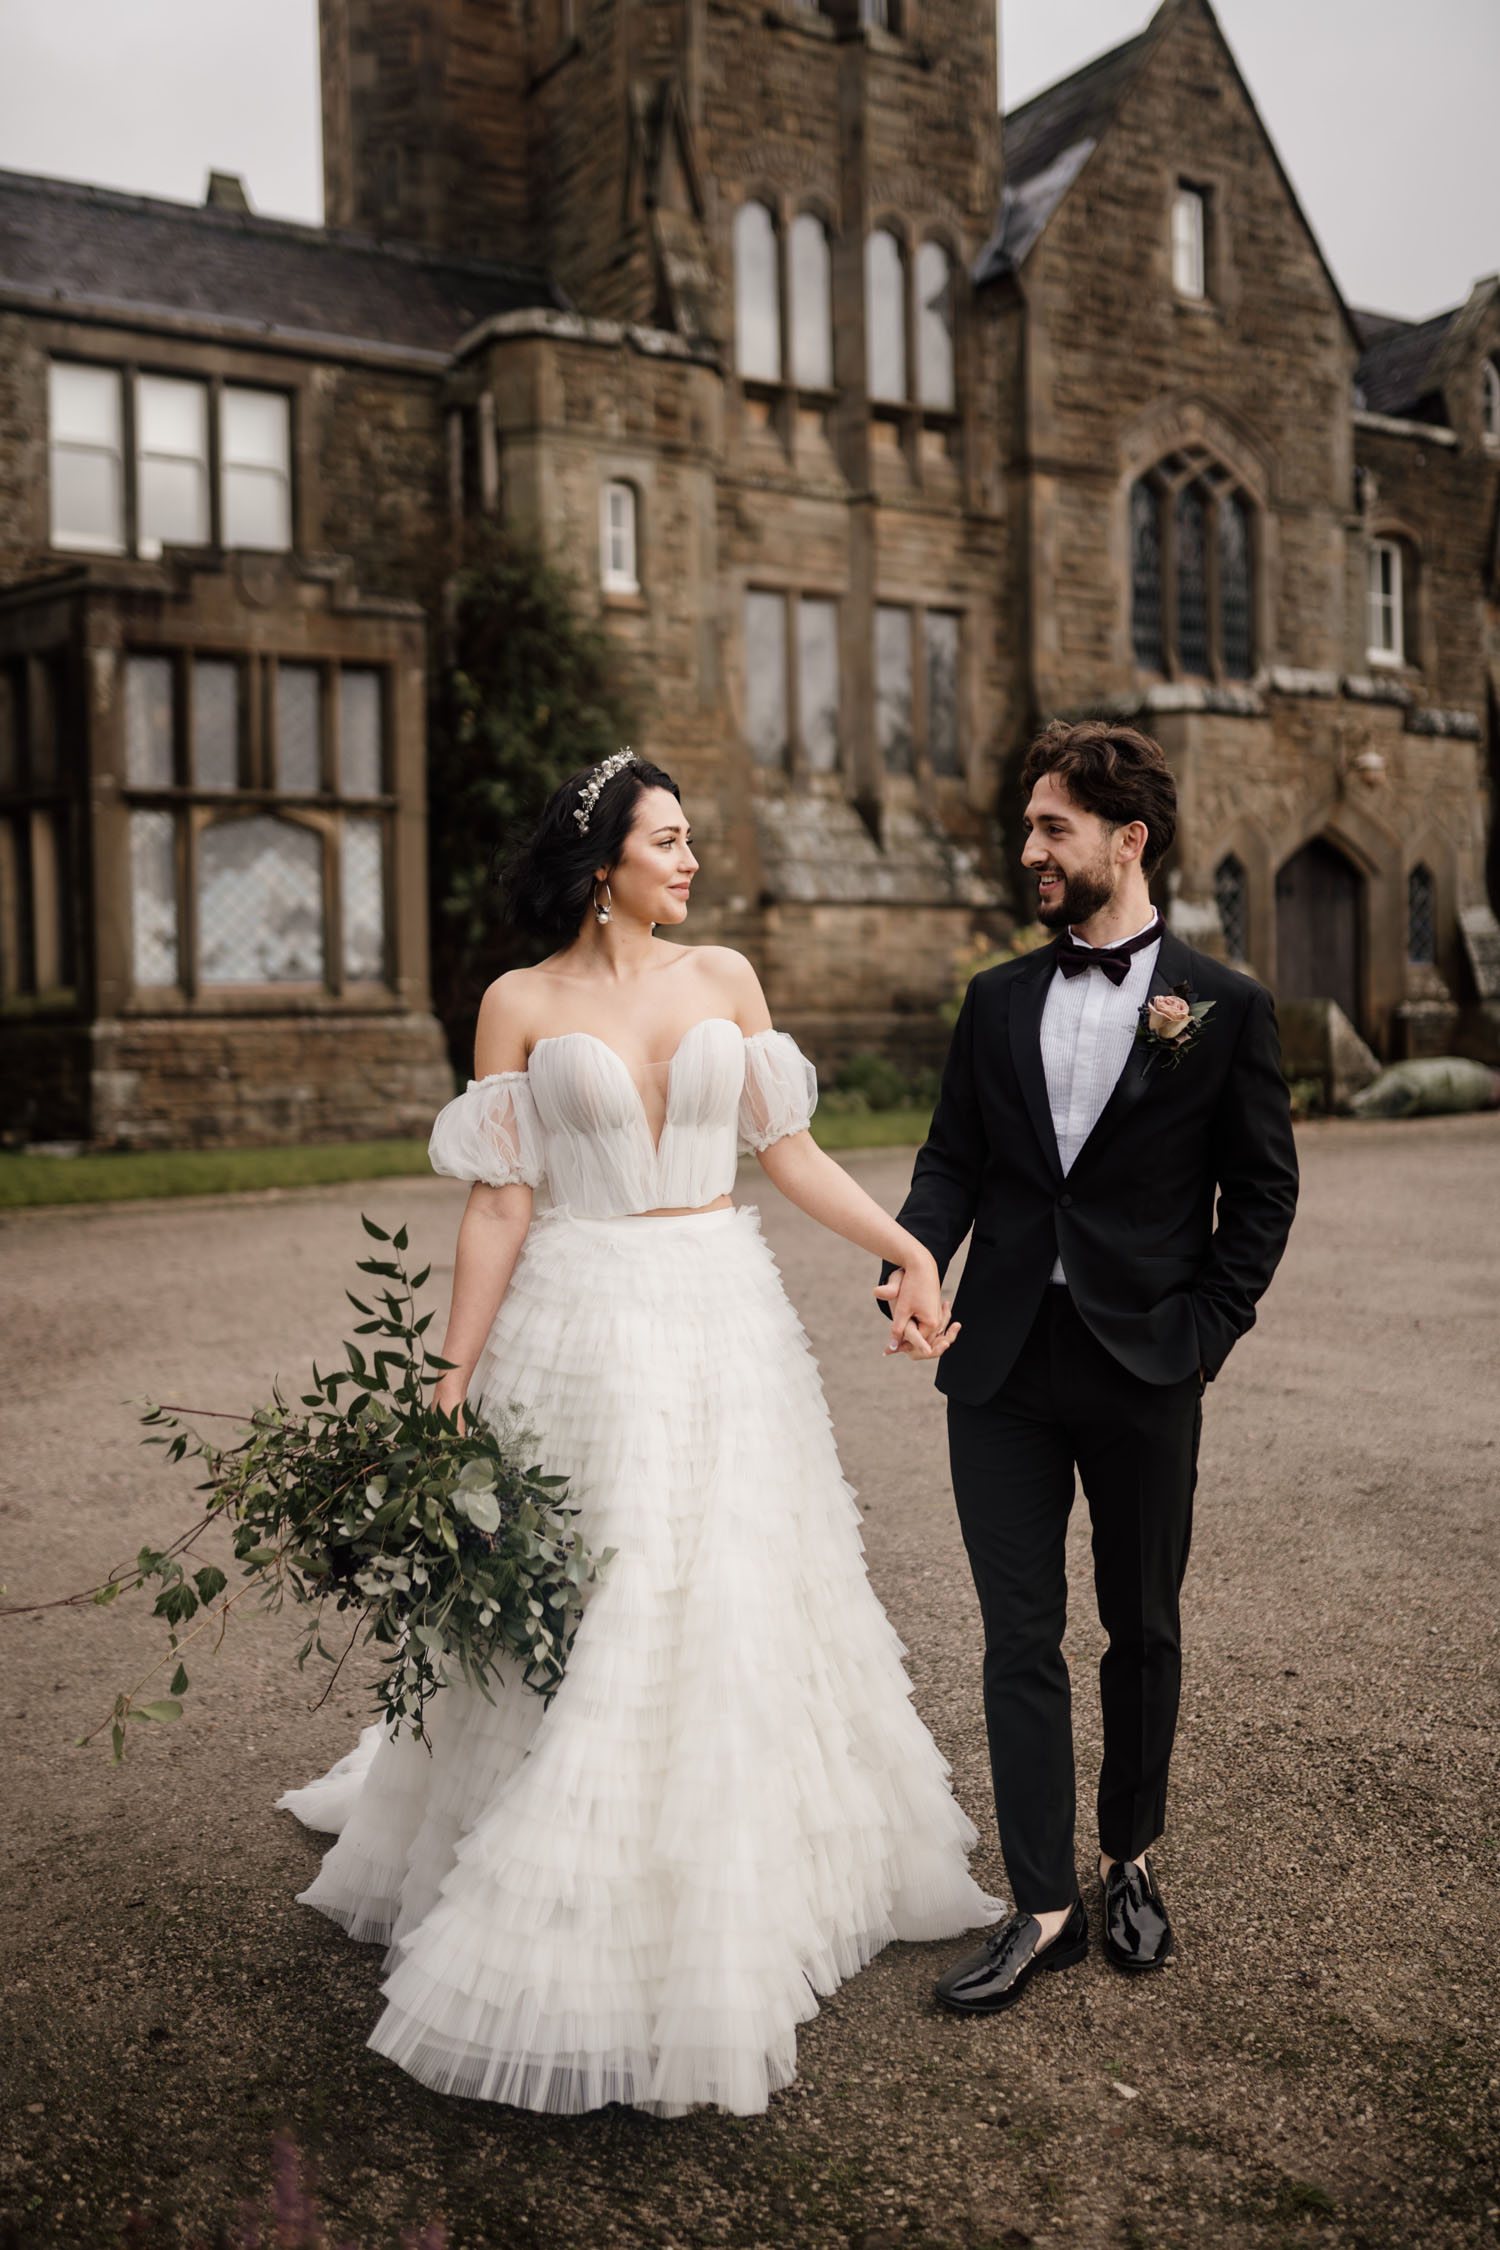 Luxe + Moody Winter Wedding Inspiration Near a Royal Family Retreat